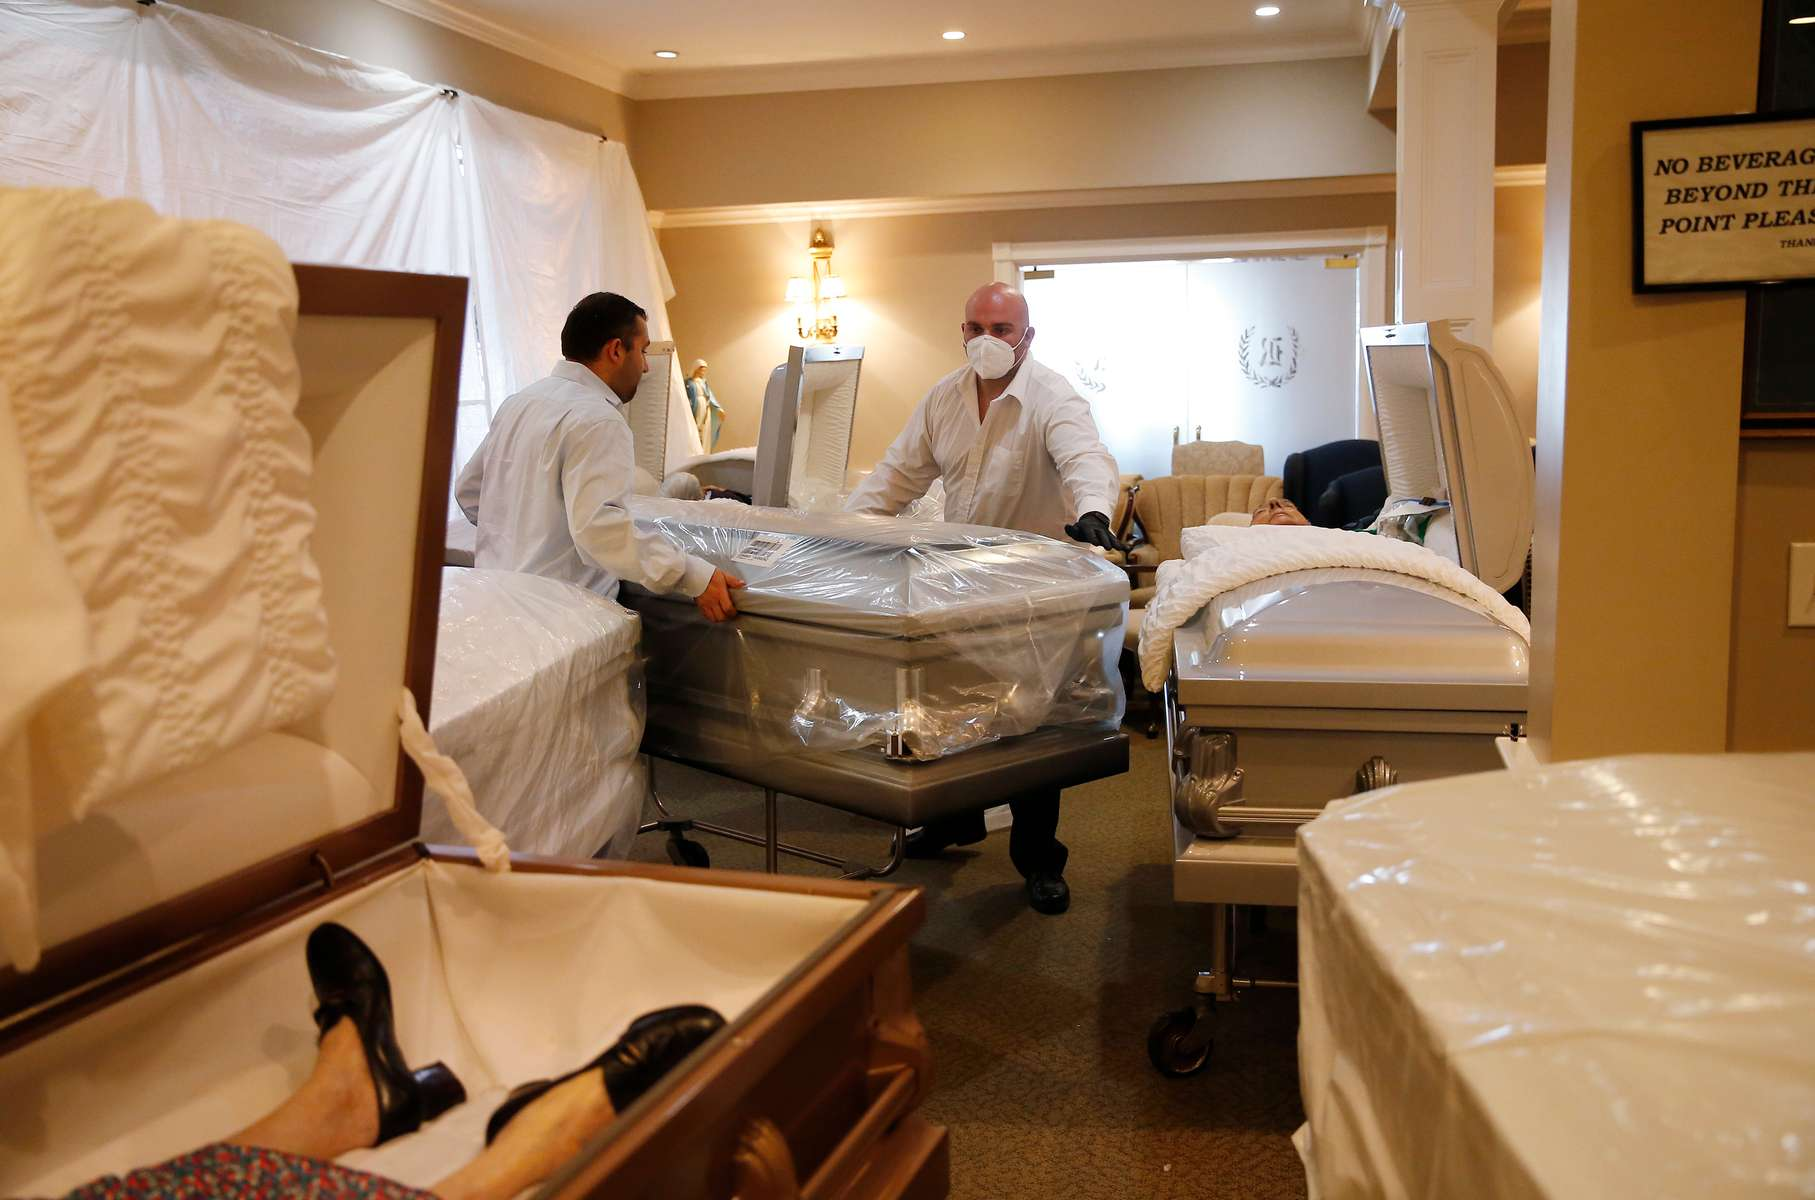 East Boston, MA - 4/28/20 -  Funeral director Joe Ruggiero, the second generation to run his family's business, and apprentice funeral director Nick Verrocchi, (R) move a casket inside a makeshift storage area. In normal times the room is used as a tribute room where families could gather, have some coffee and regroup but with a surge in COVID-19 deaths, the room had to be temporarily repurposed. (Jessica Rinaldi/Globe Staff)